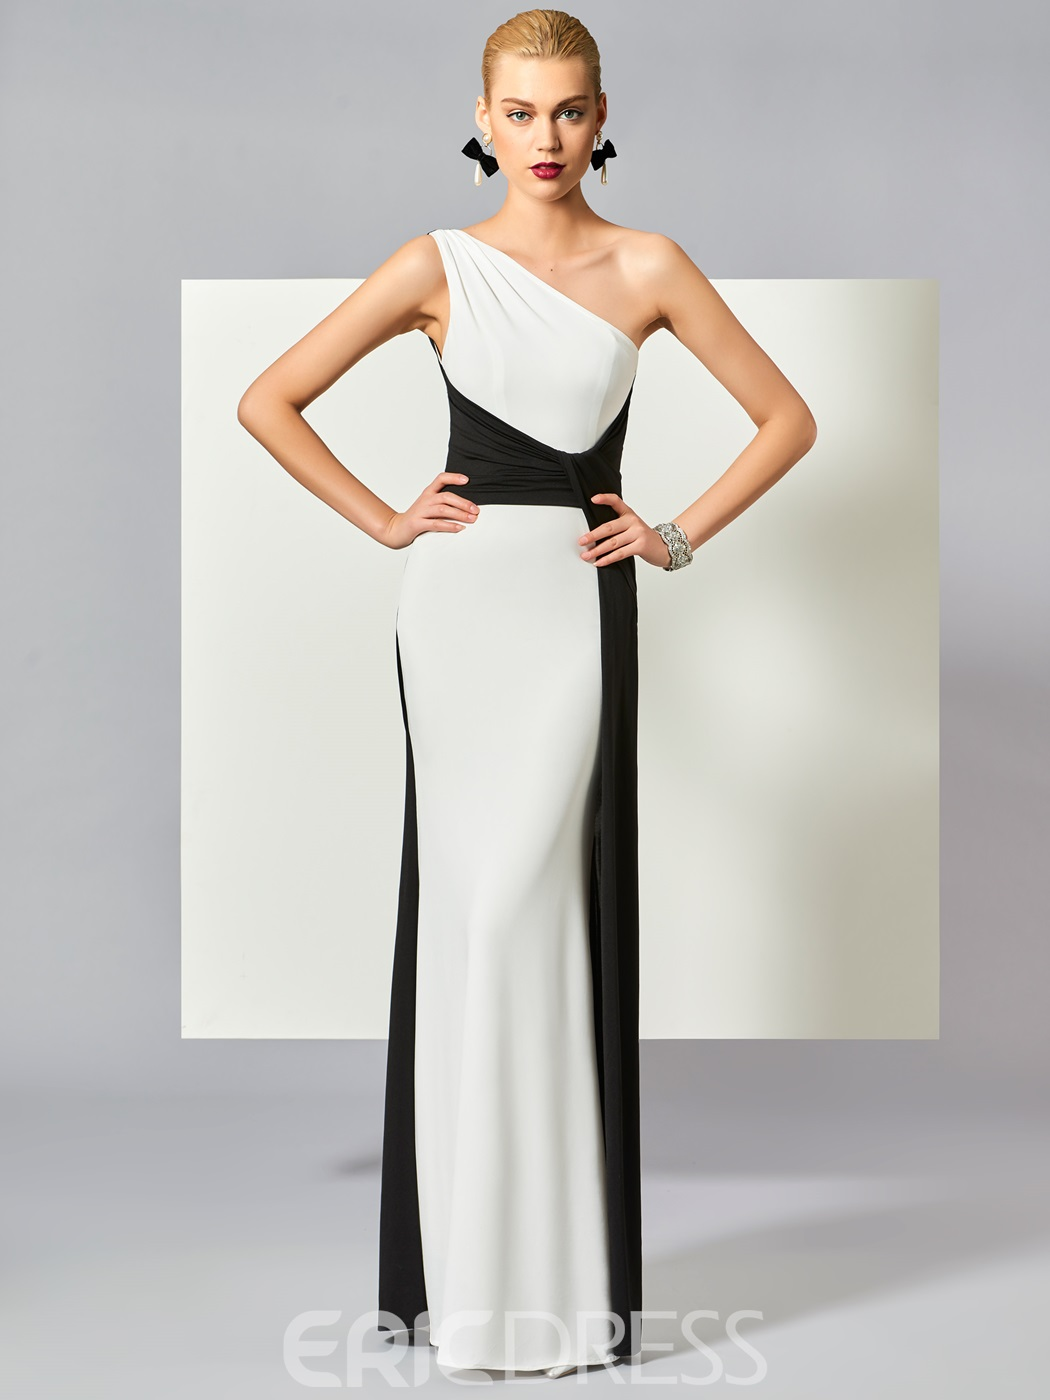 Ericdress Chic Contrast Color One Shoulder Sheath Floor Length Evening Dress